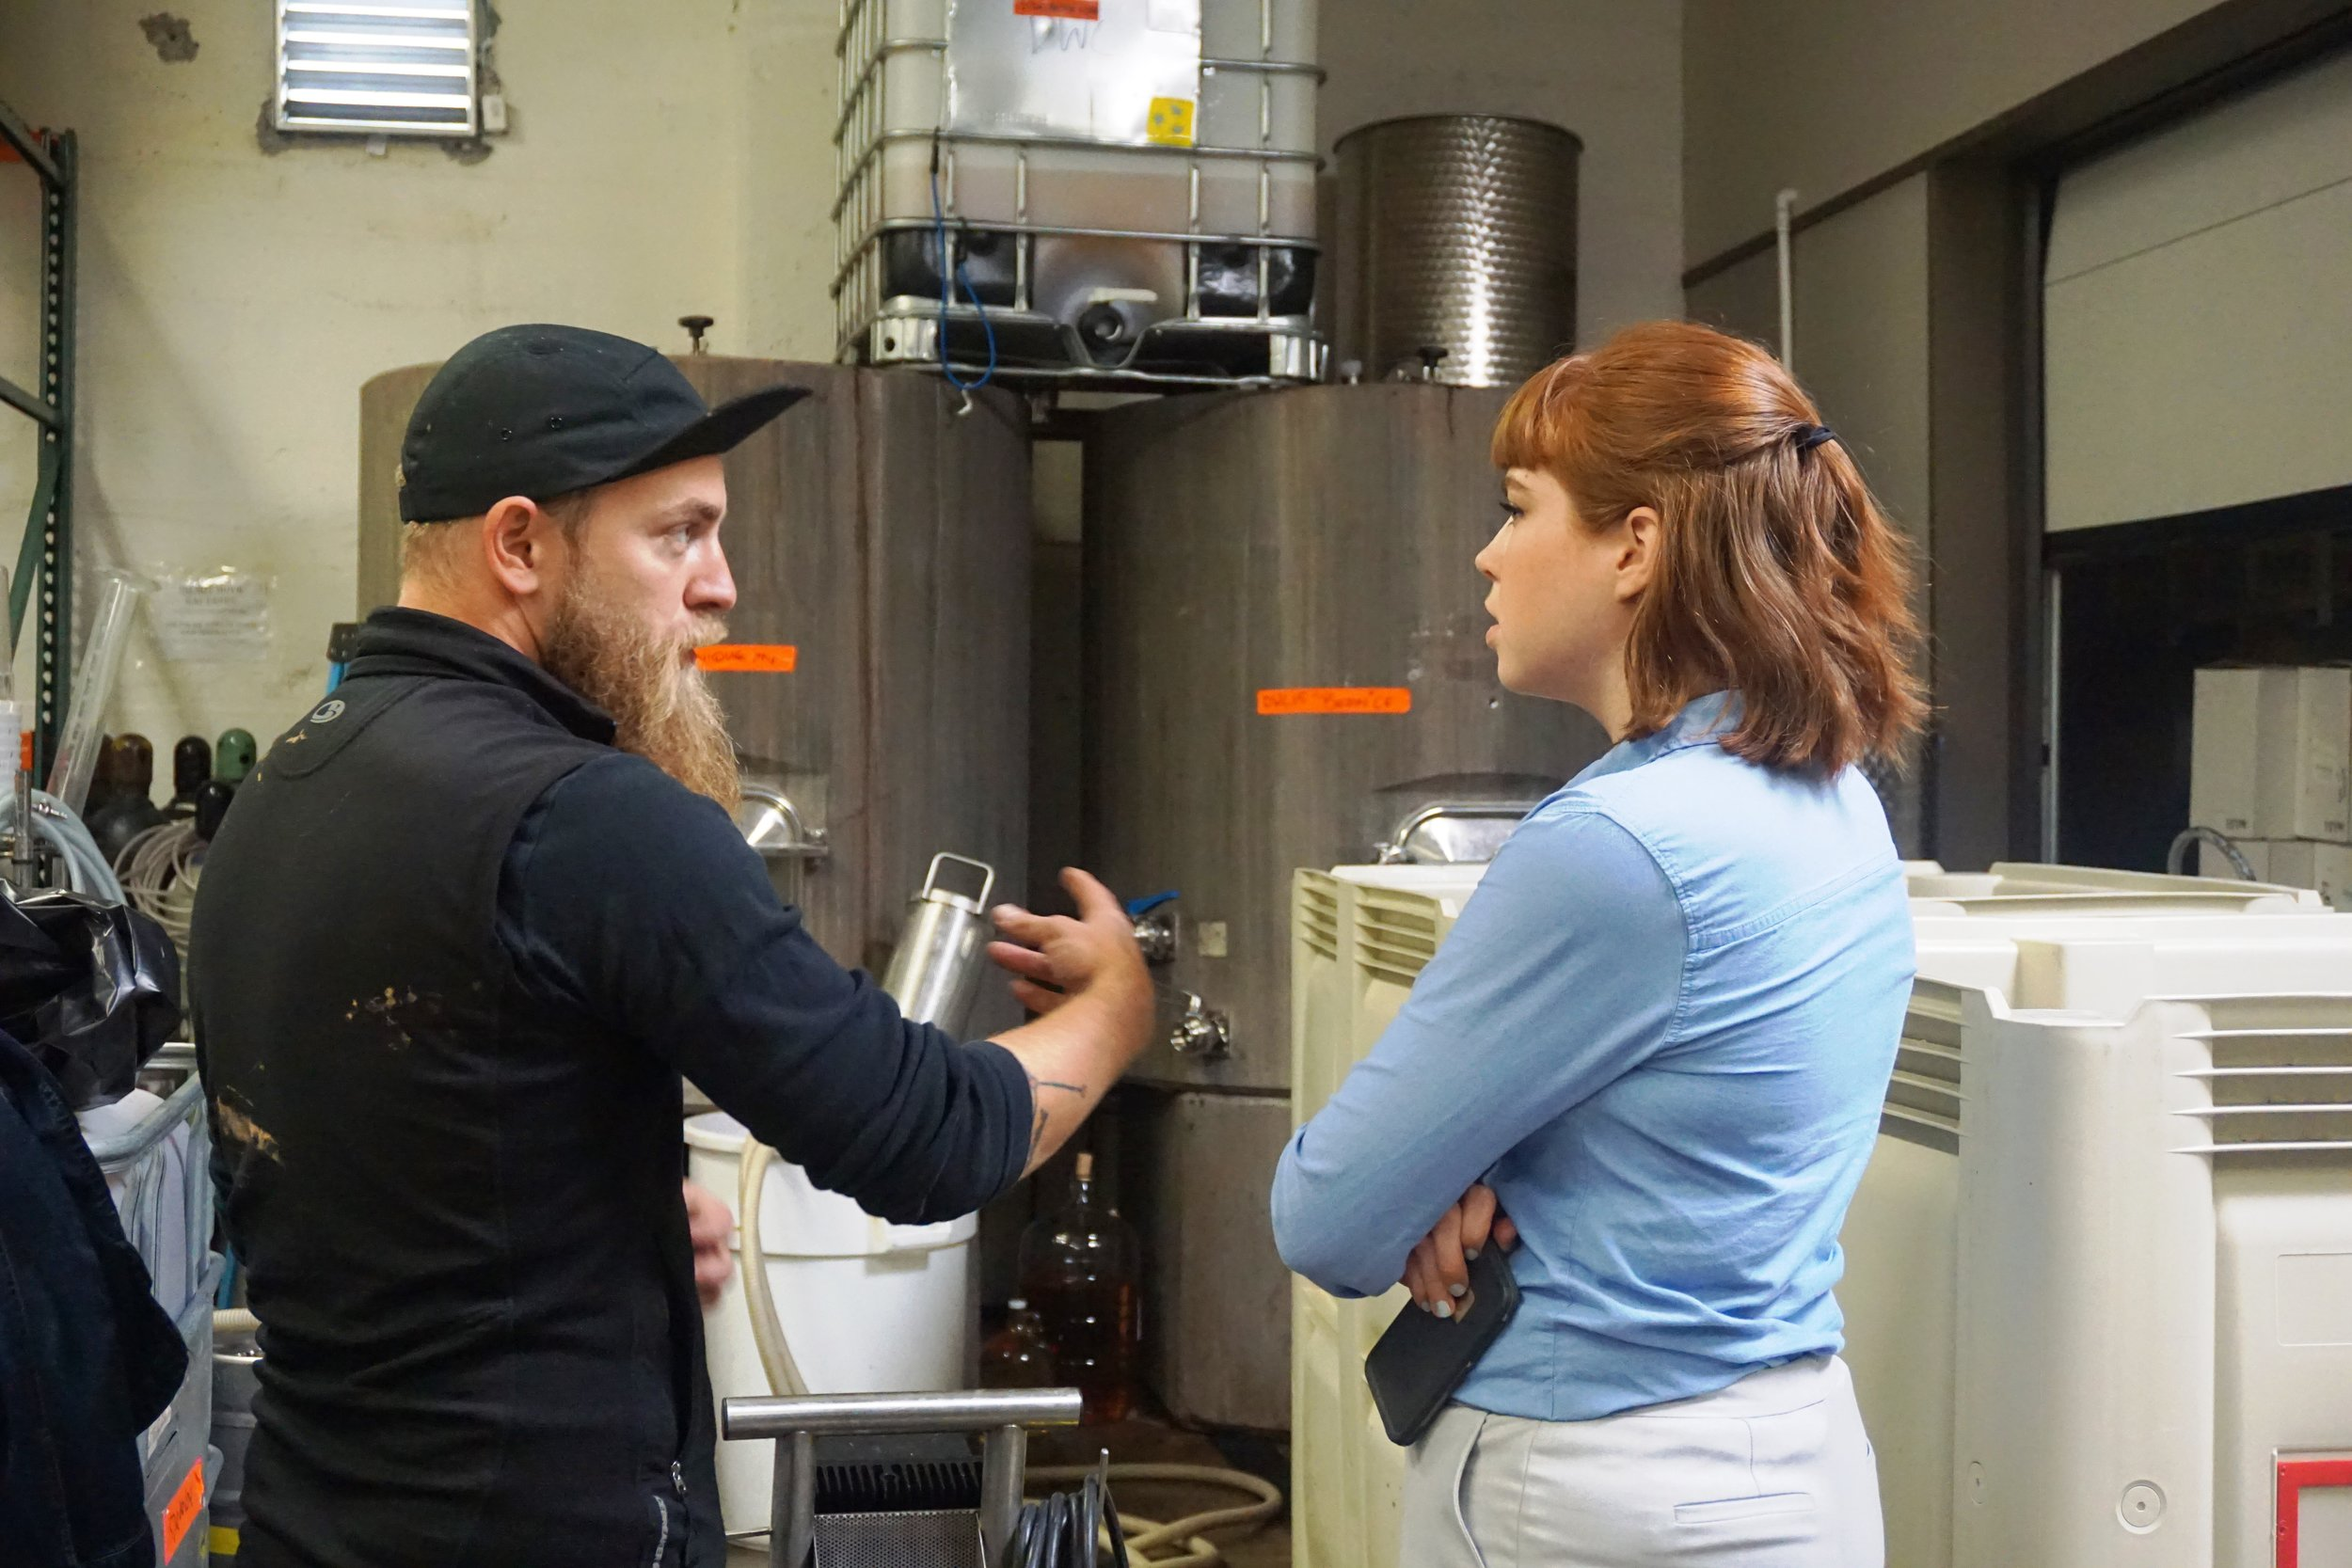 Luke Mathews, winery marketing & wine club specialist at SE Wine Collective, explains the concept of concrete fermenters to Jordan Johnson of Broussard Communications. Viki Eierdam